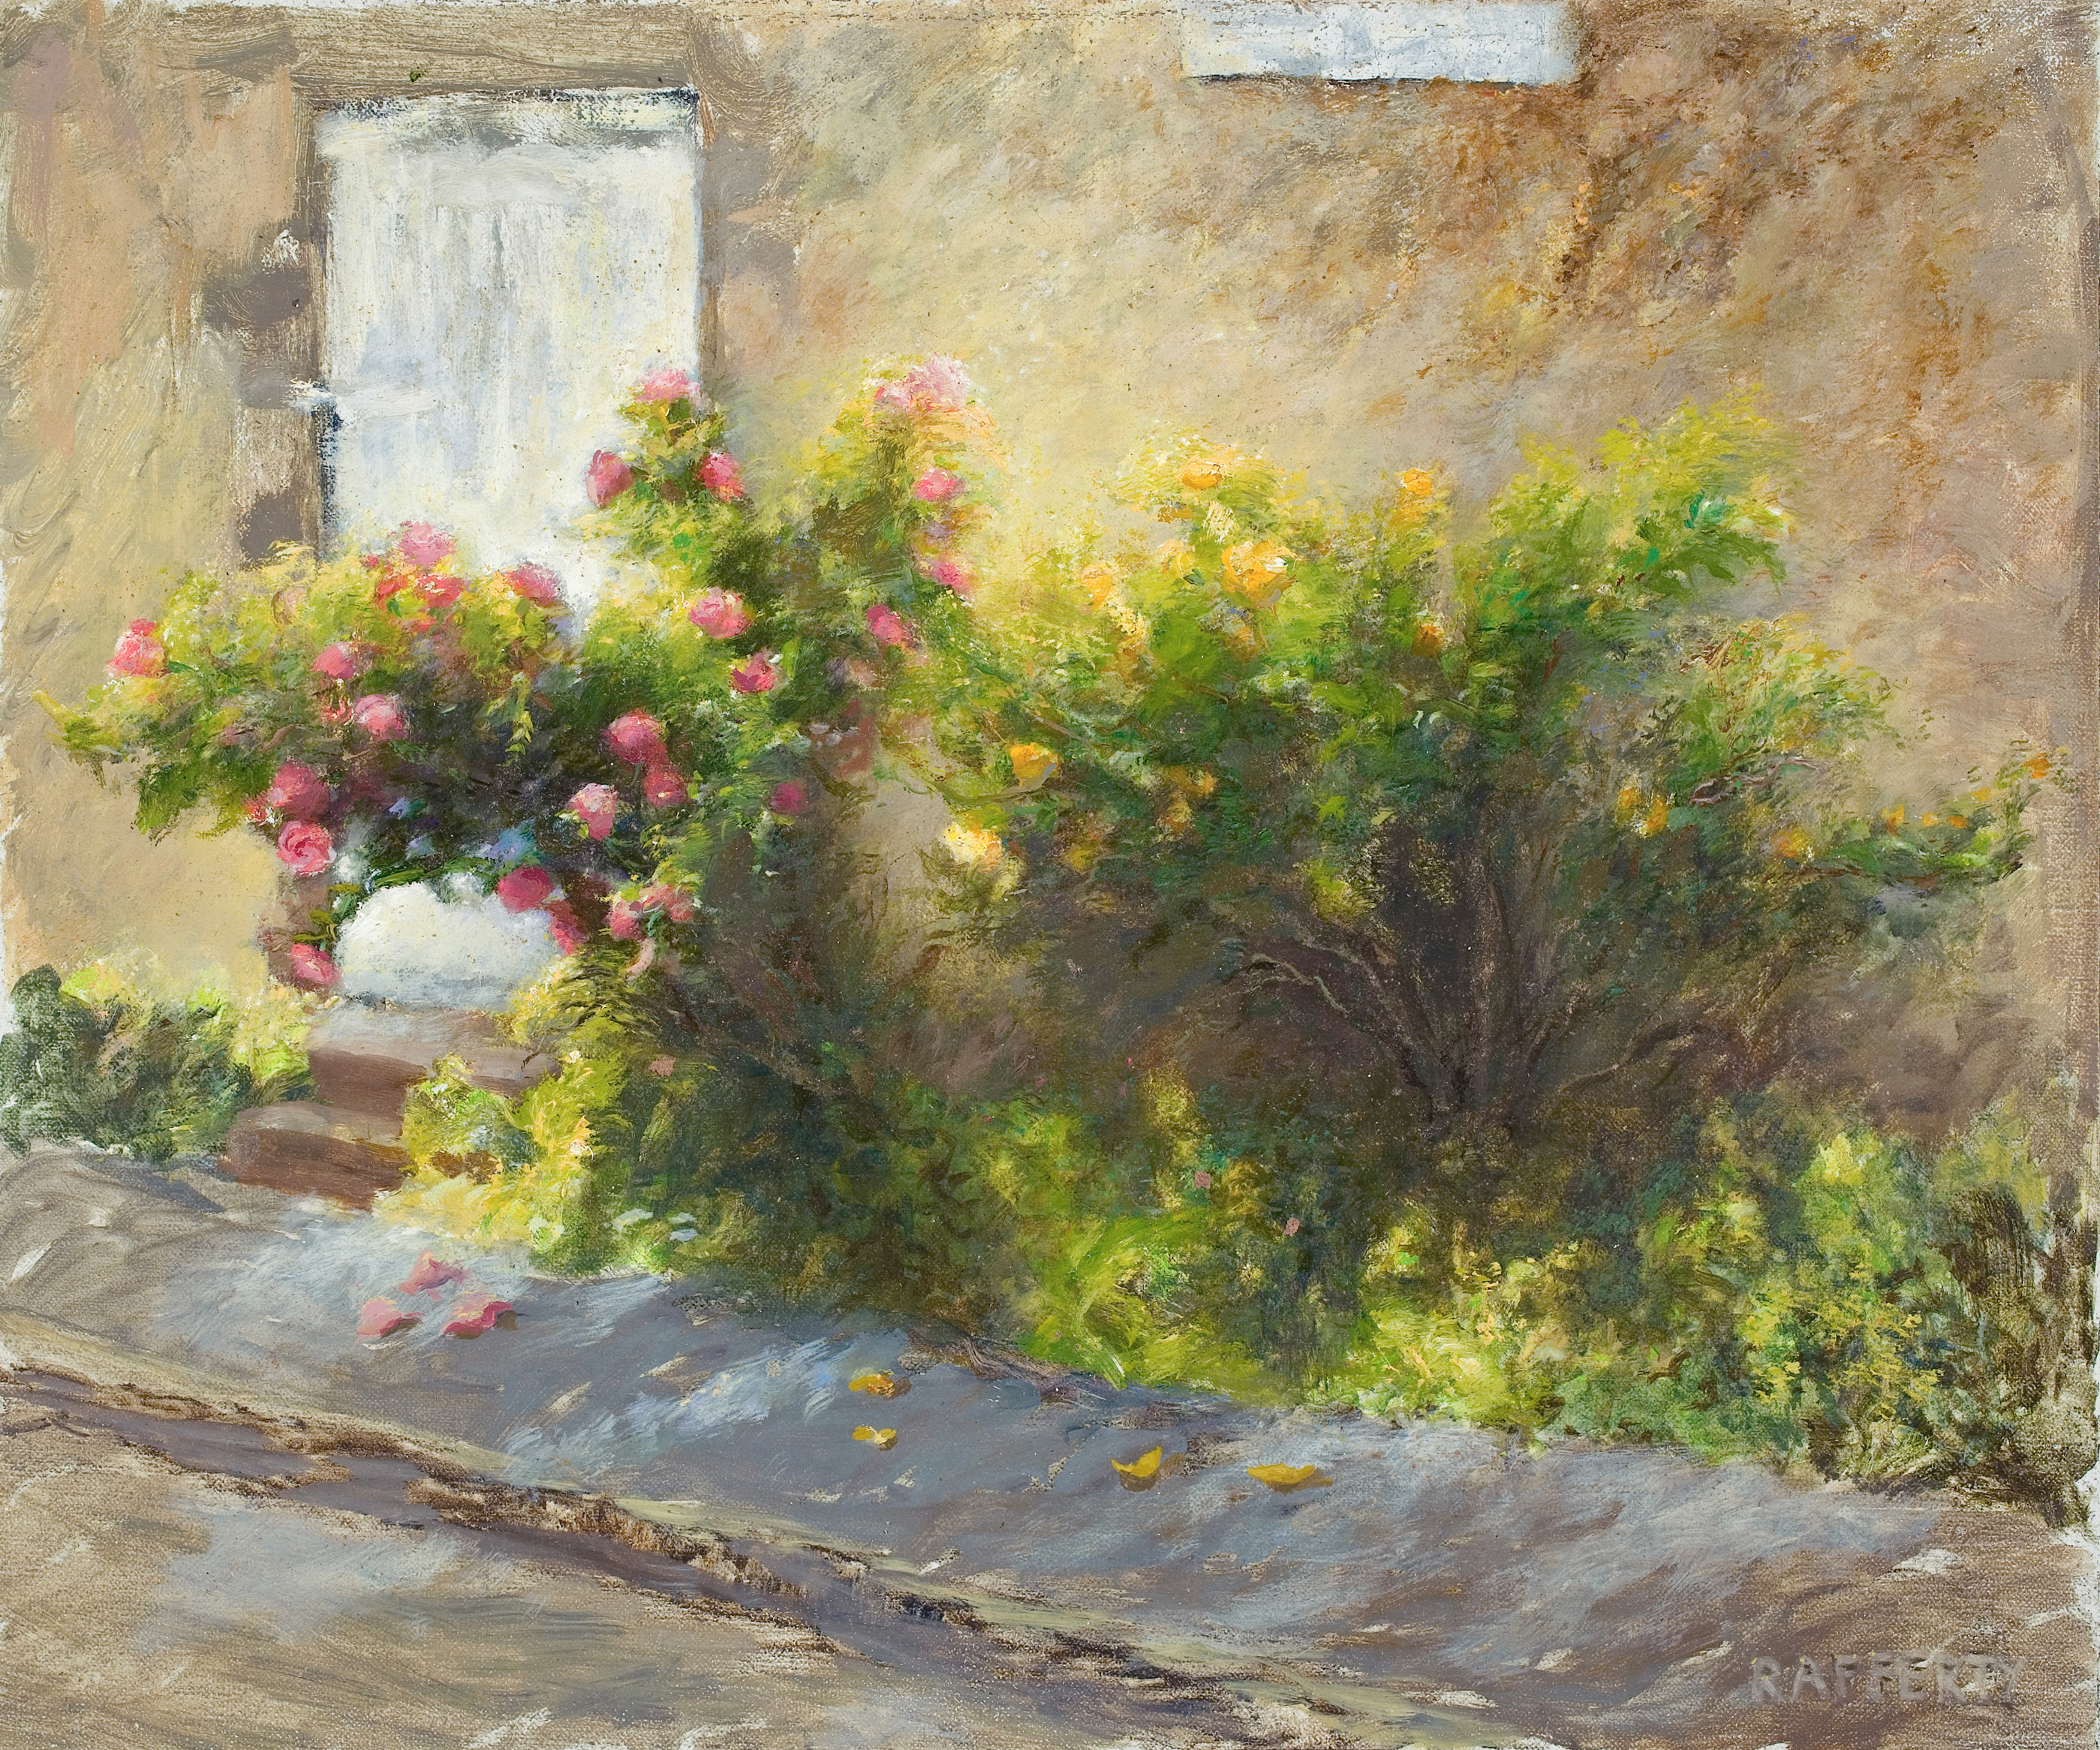 <div class='title'>           (submt)Argenton Roses   Large   Rafferty   Painting         </div>